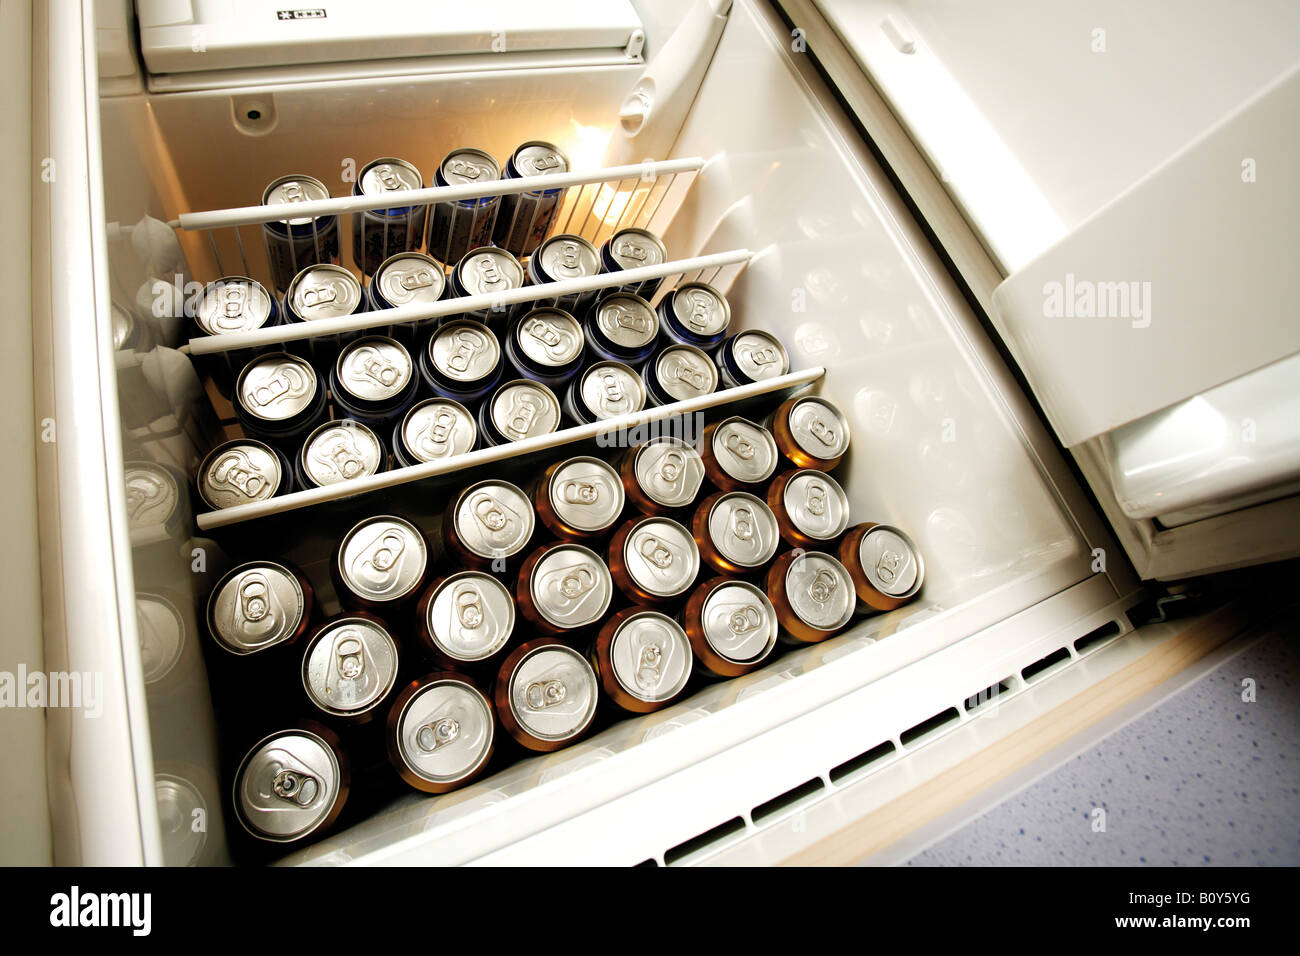 Beer Cans in fridge, low angle view - Stock Image